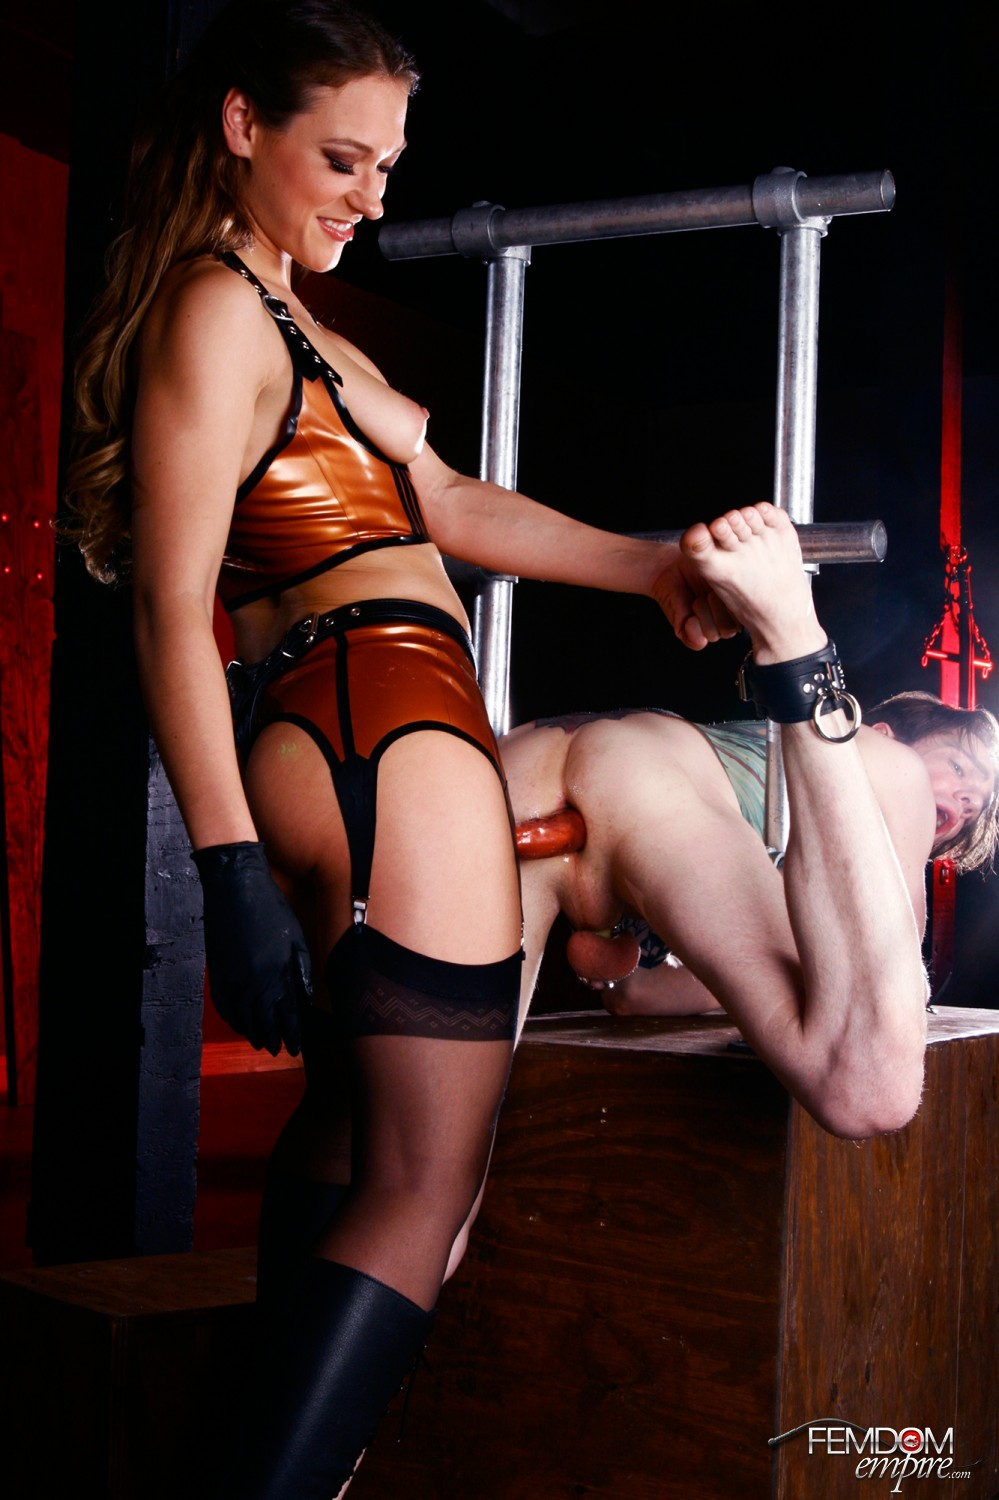 Female domination of female submissives